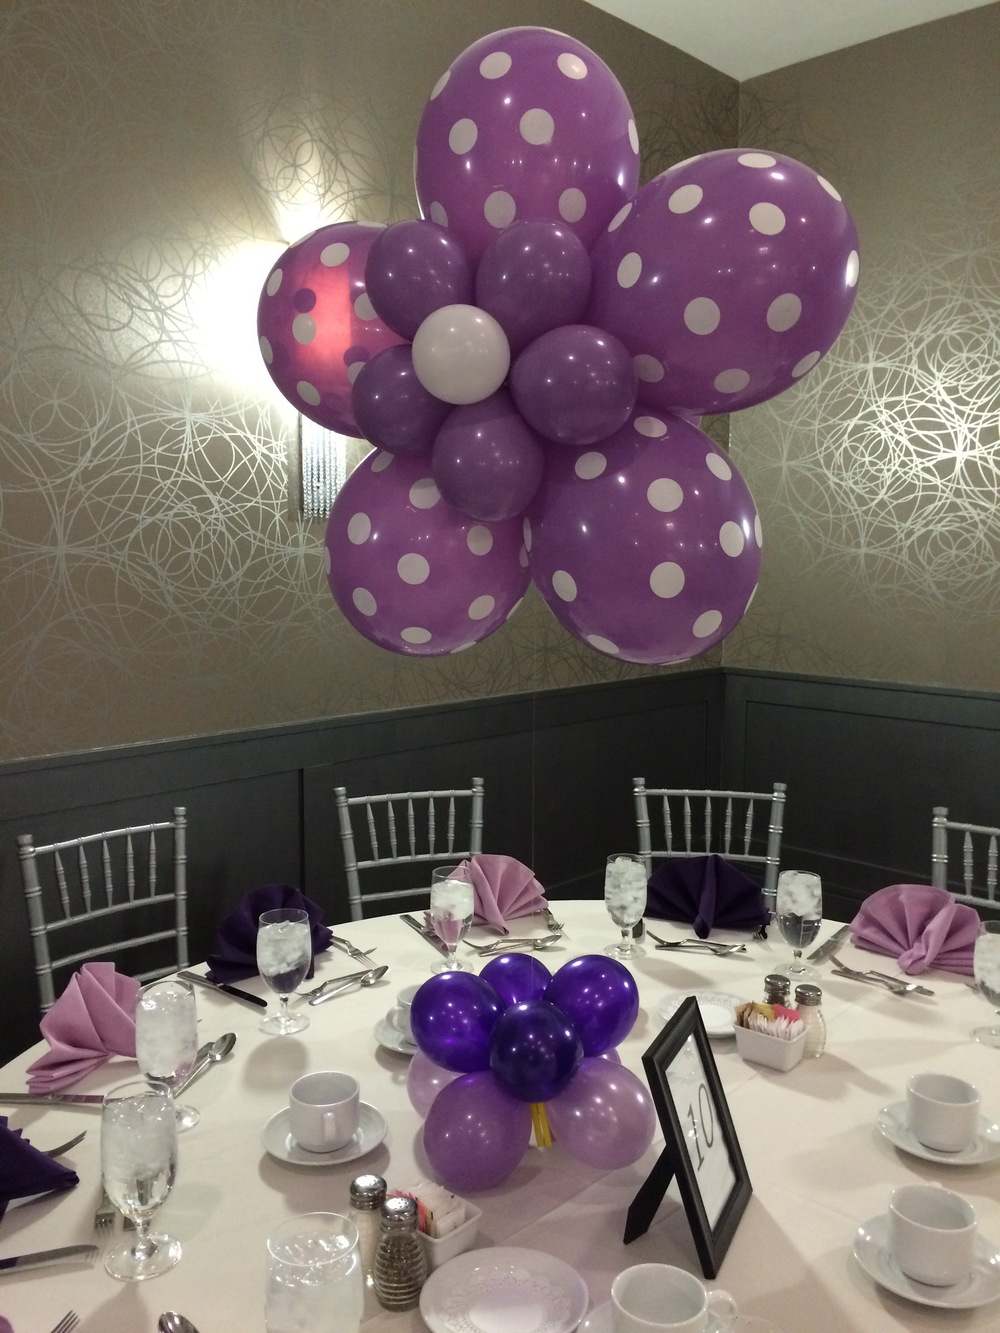 Custom Polka Dot Daisy Flower Balloon Centerpiece